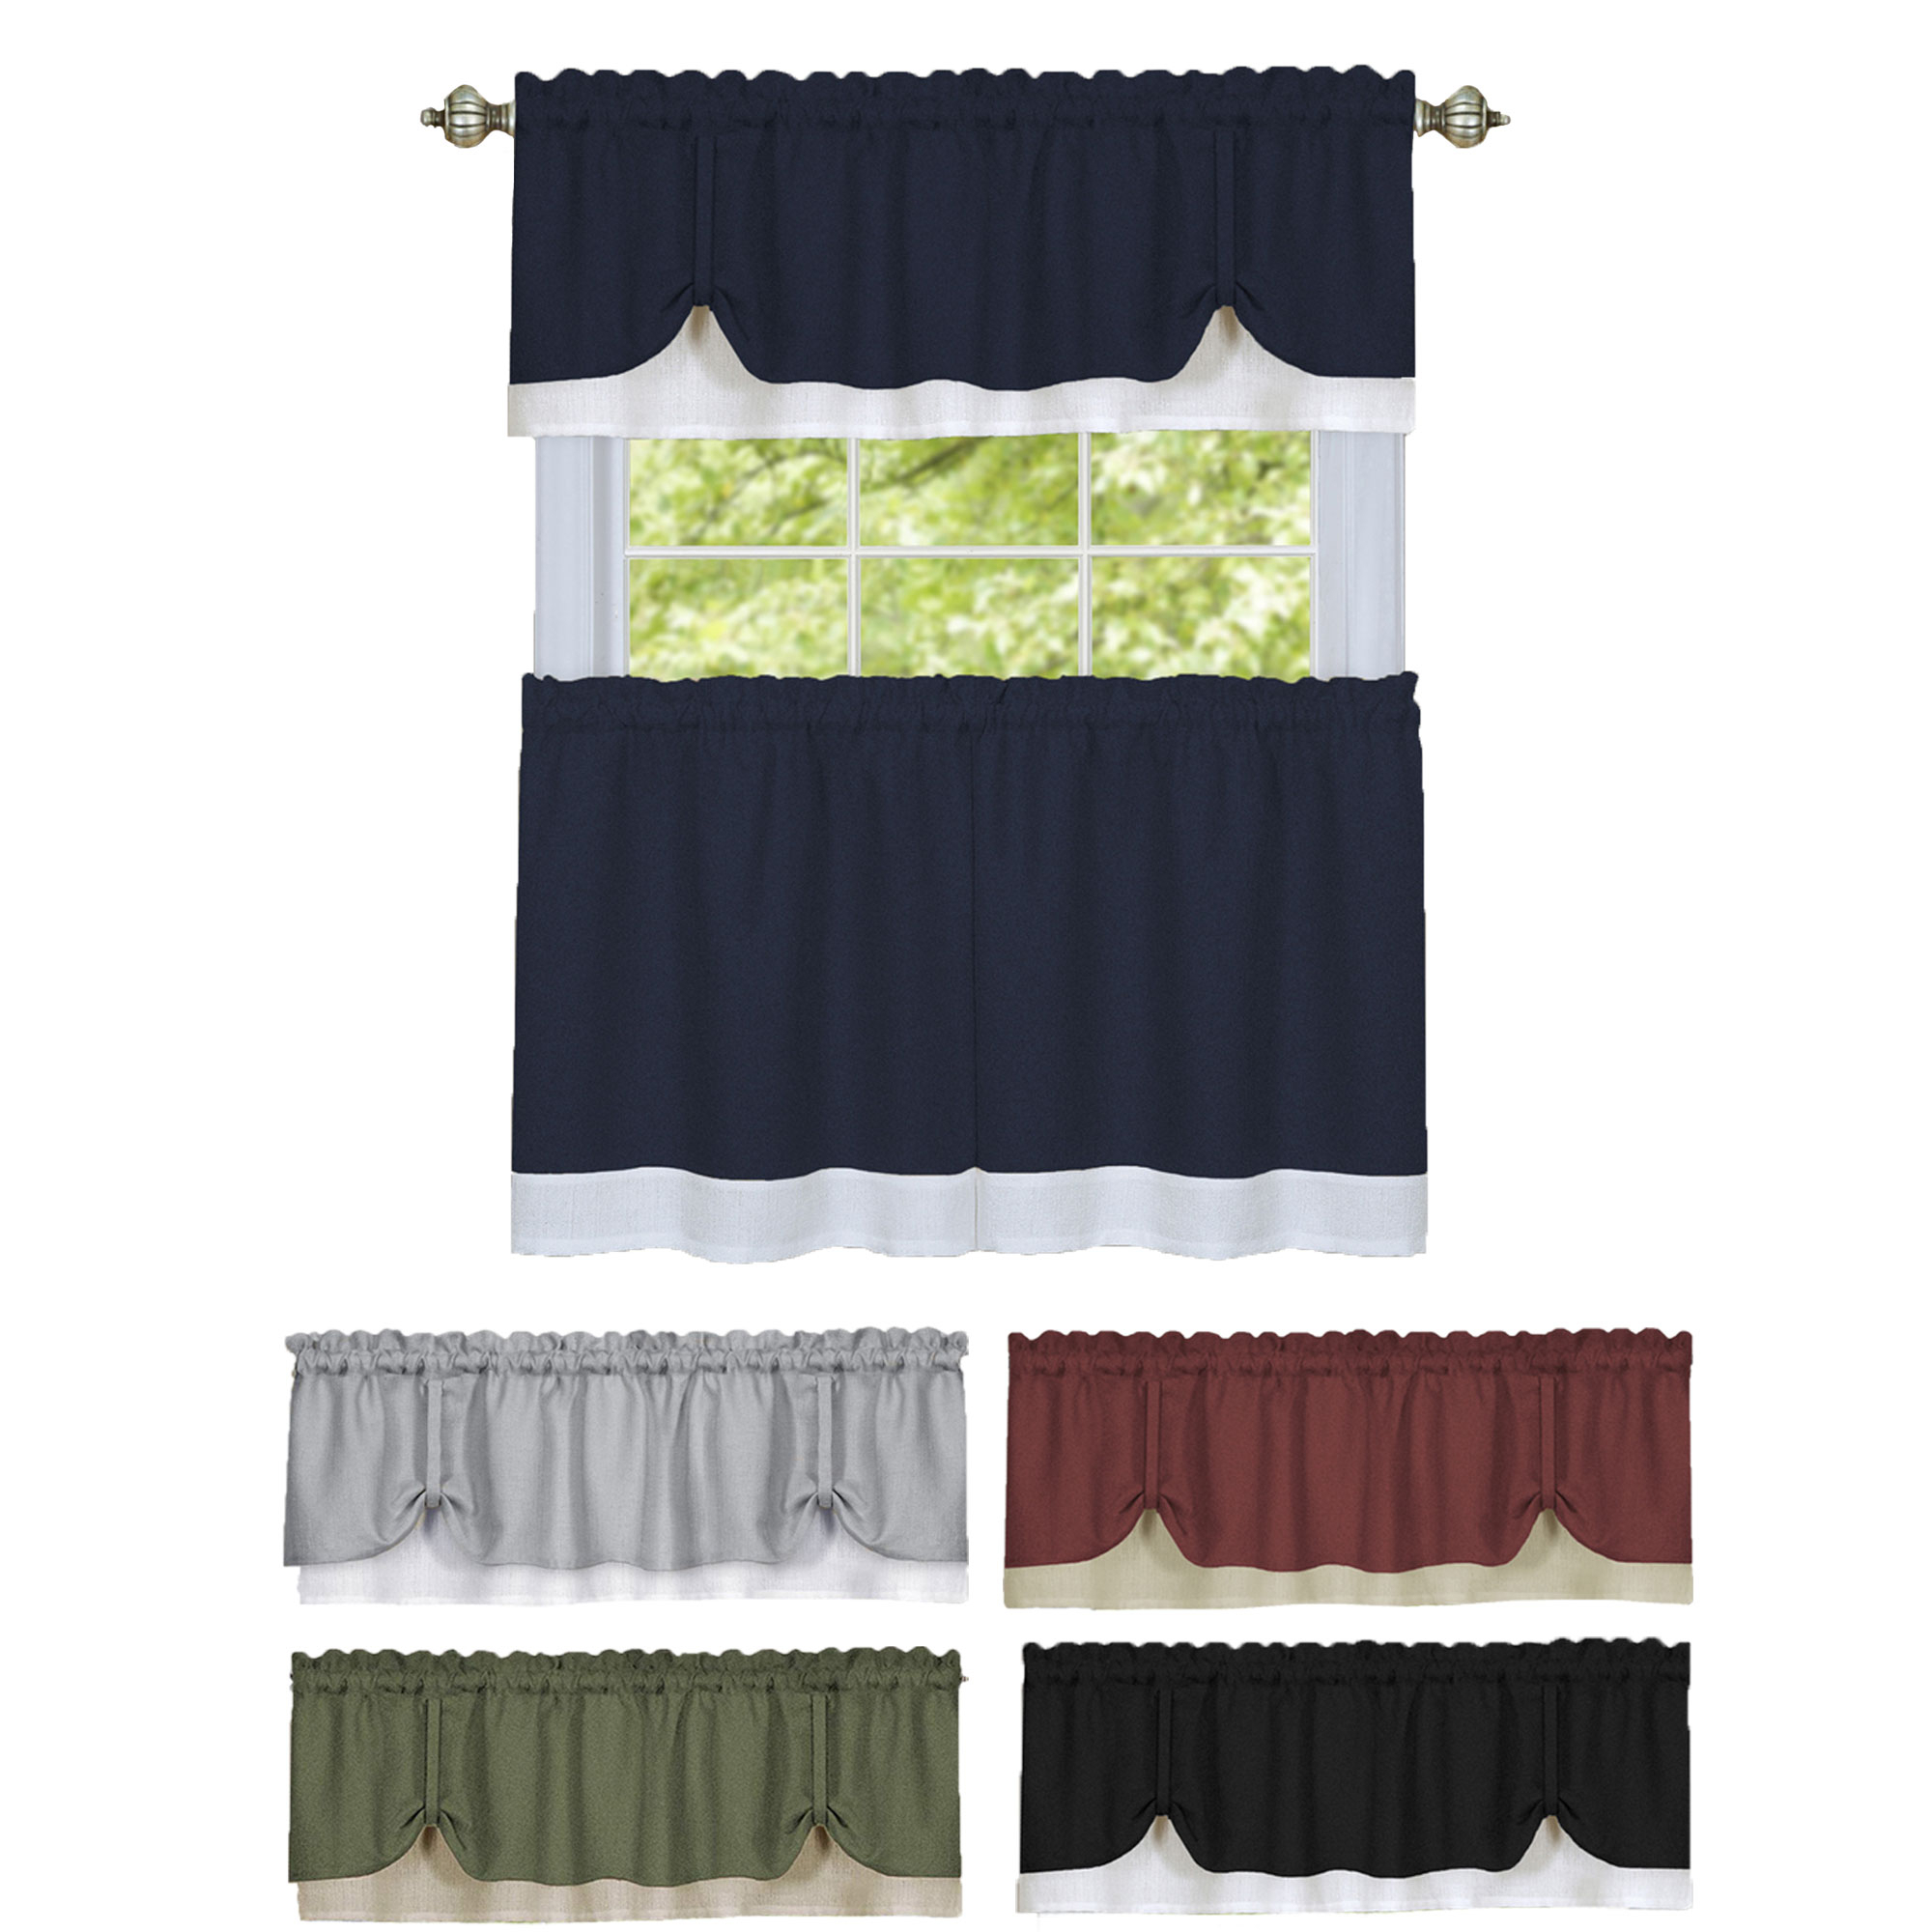 Details About Solid Window Curtain Double Layer Tier Pair & Valance Set Within Most Current Touch Of Spring 24 Inch Tier Pairs (View 9 of 20)